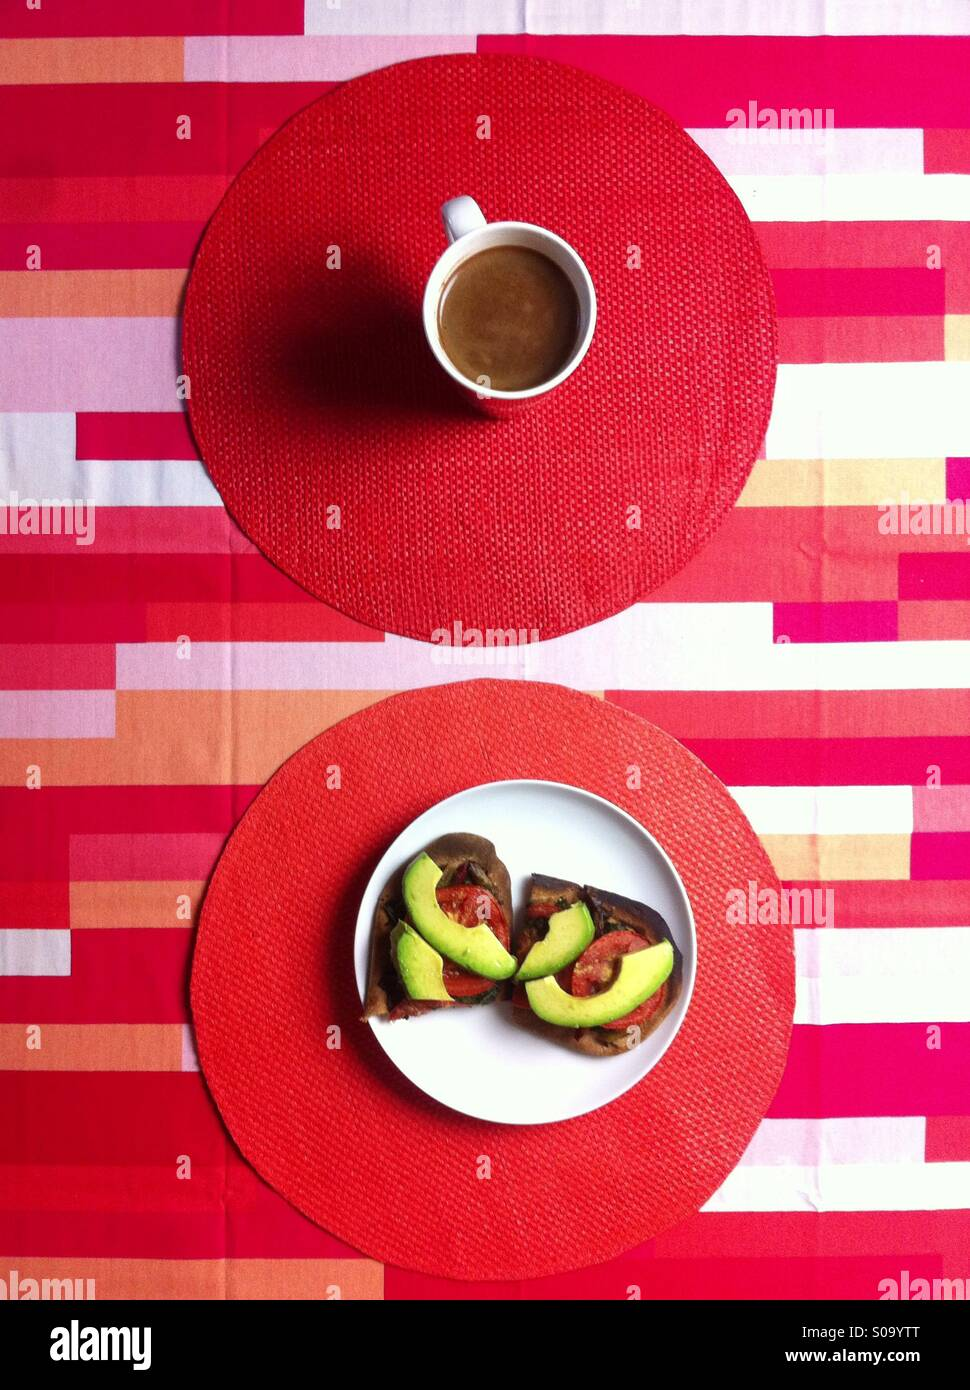 Vegan breakfast on red geometrical tablecloth with coffee and open sandwiches - Stock Image